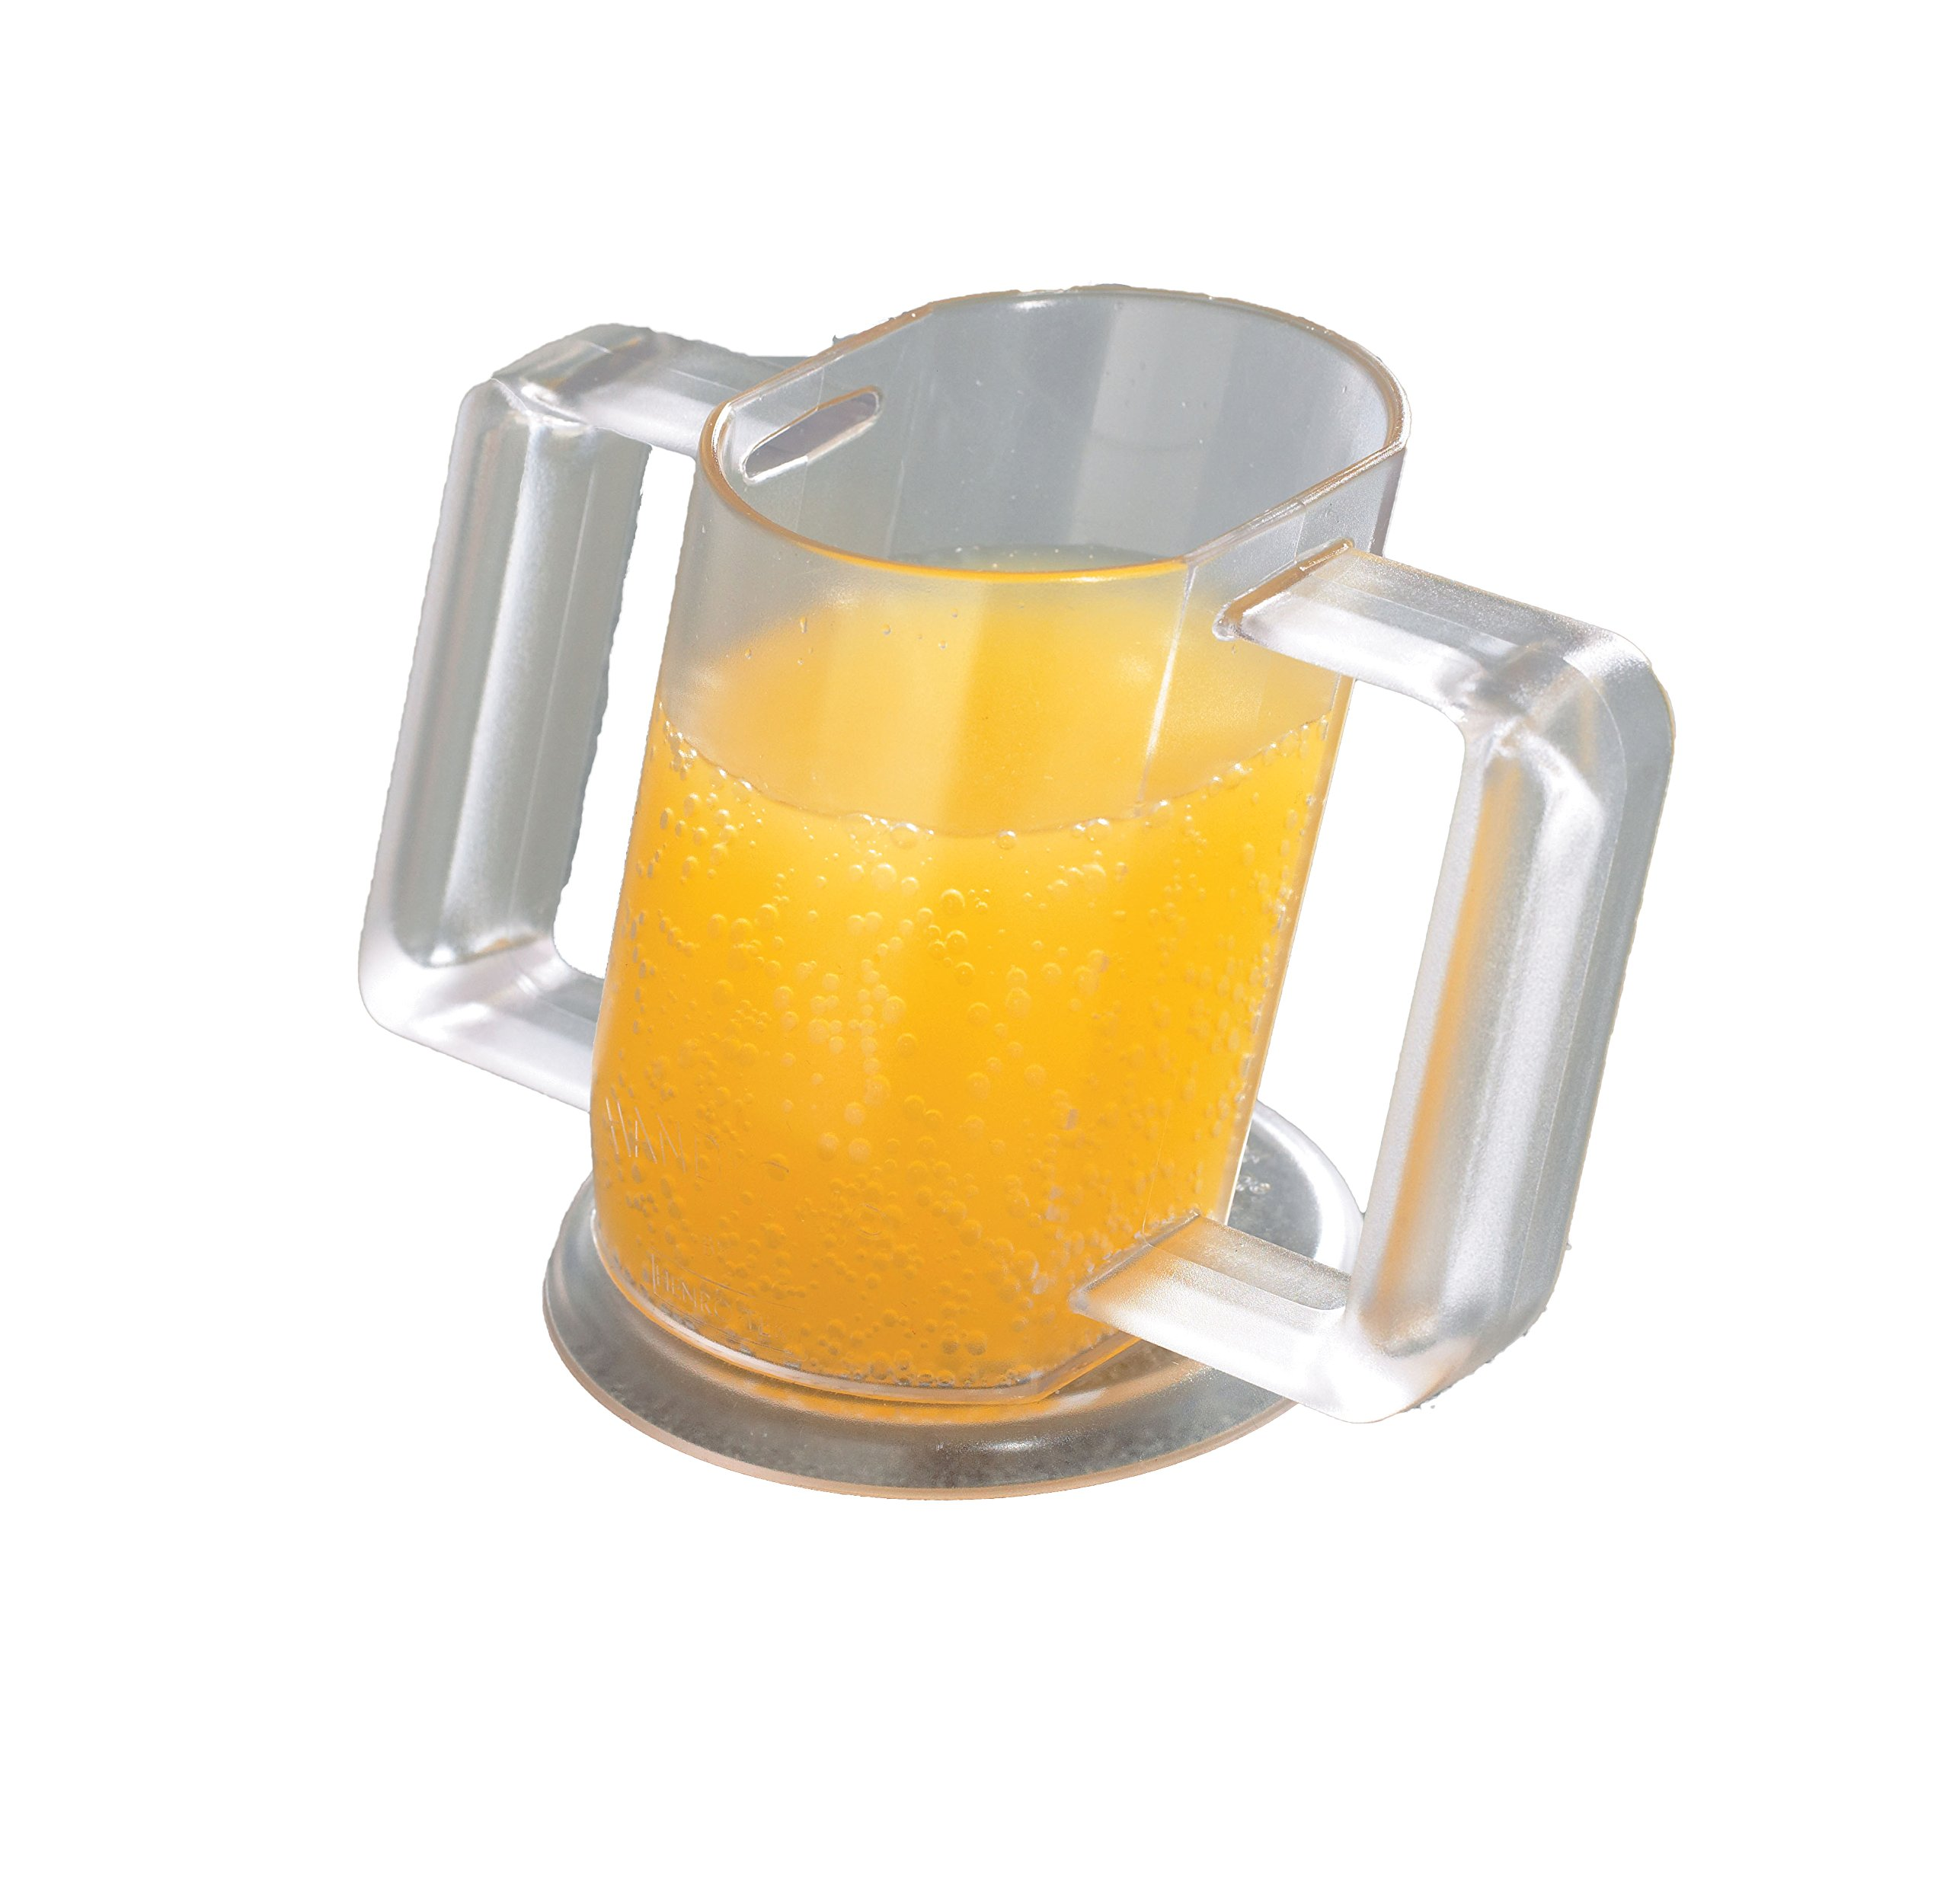 Ableware 745930007 Pediatrics HandyCup by Maddak Inc.